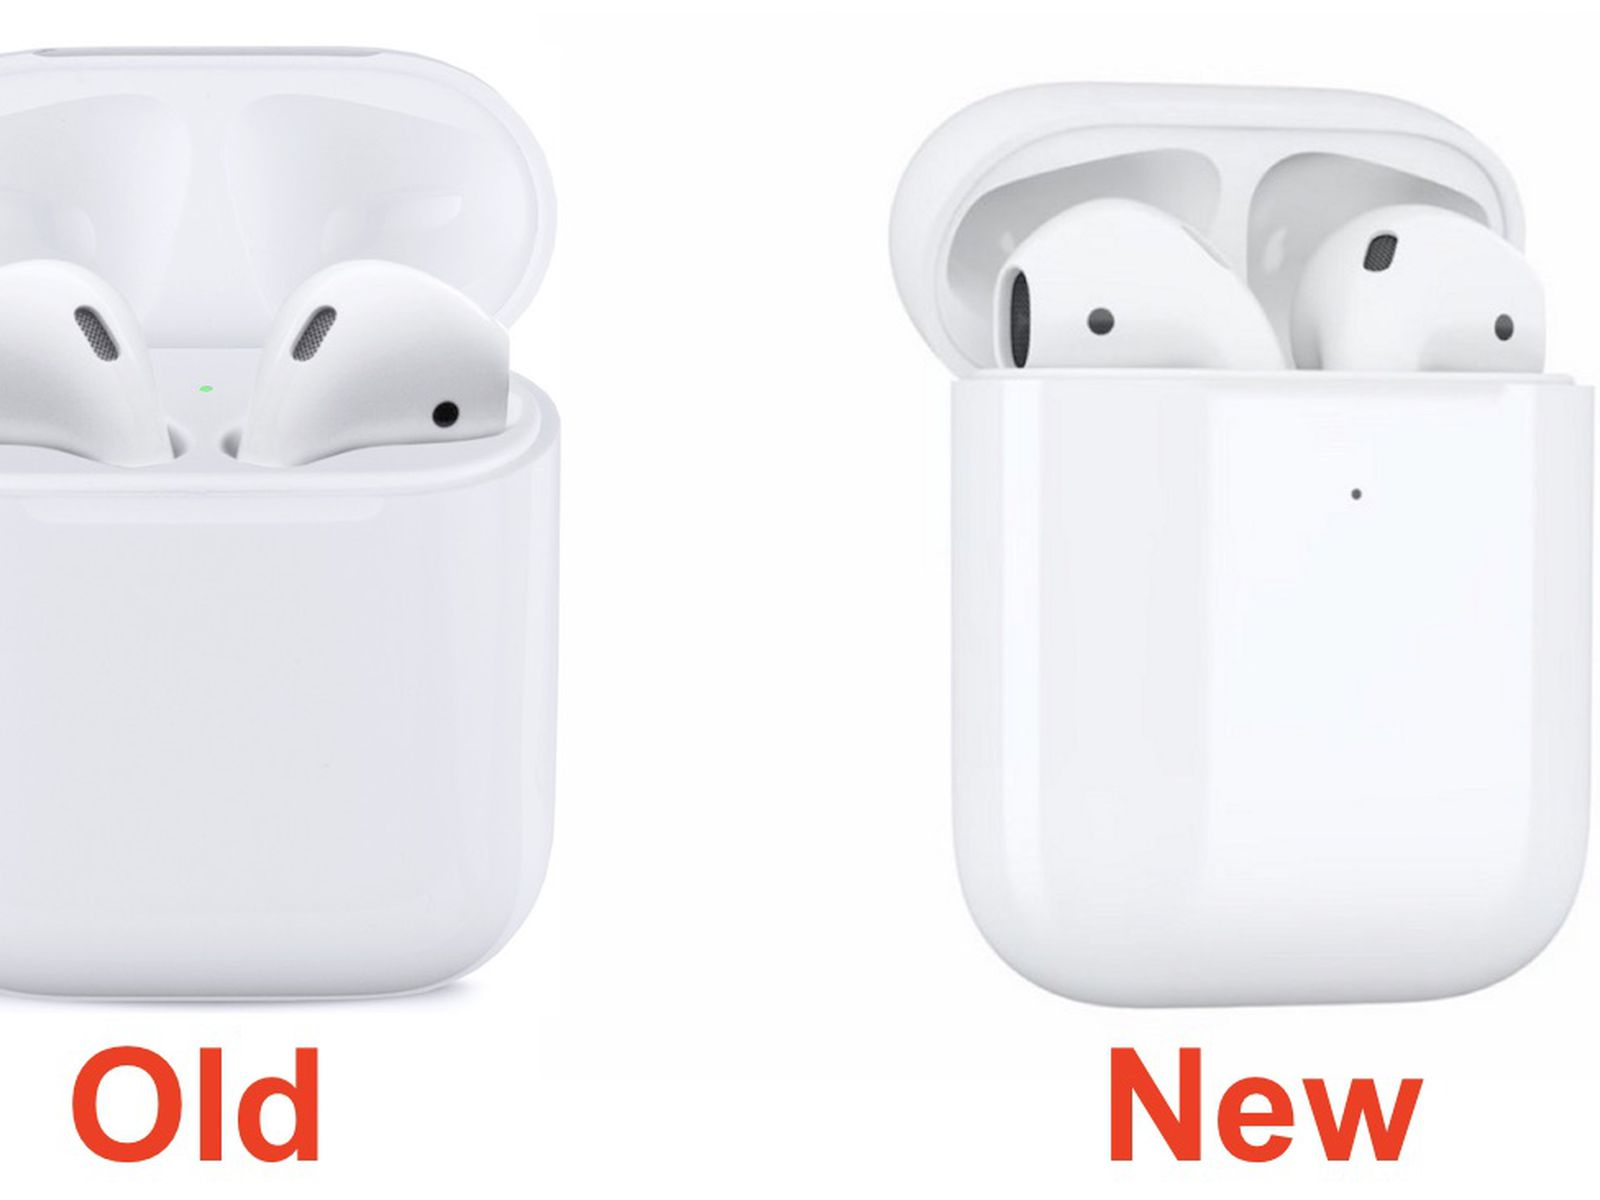 Apple Introduces New Second Generation Airpods Case With Wireless